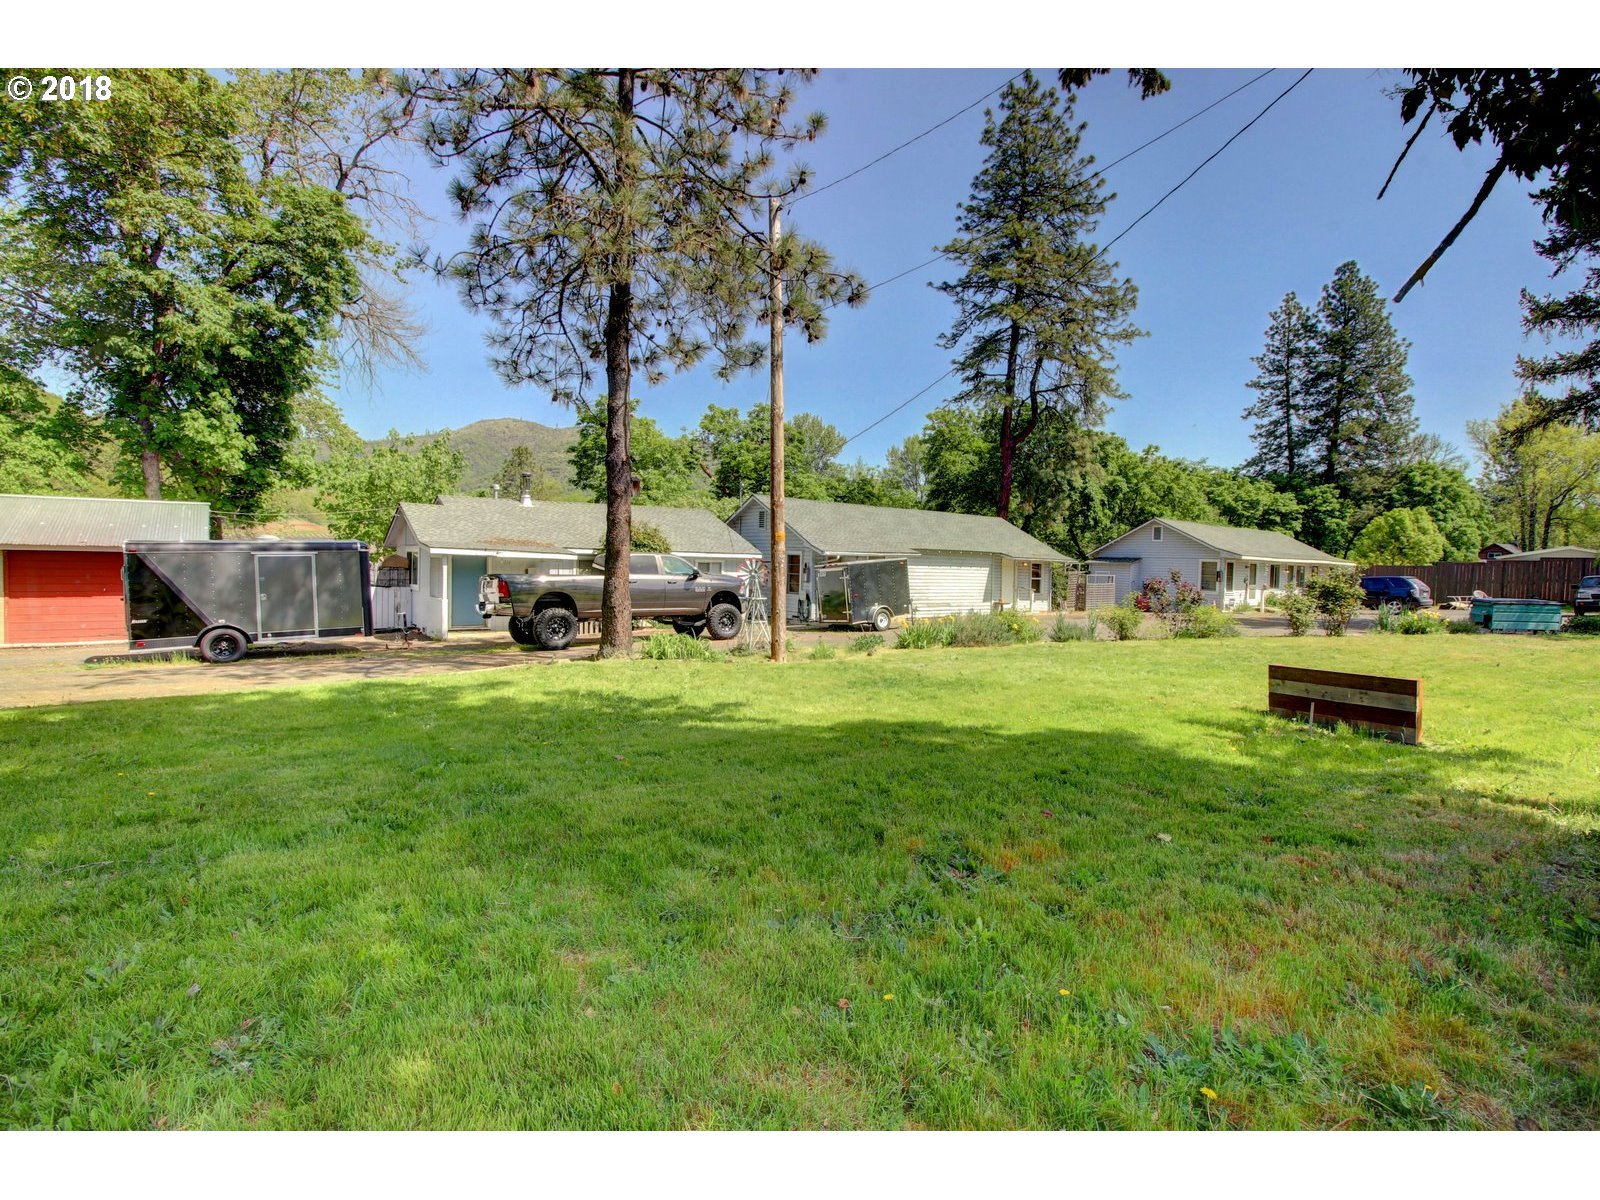 Sunny Valley, OR  Bedroom Home For Sale